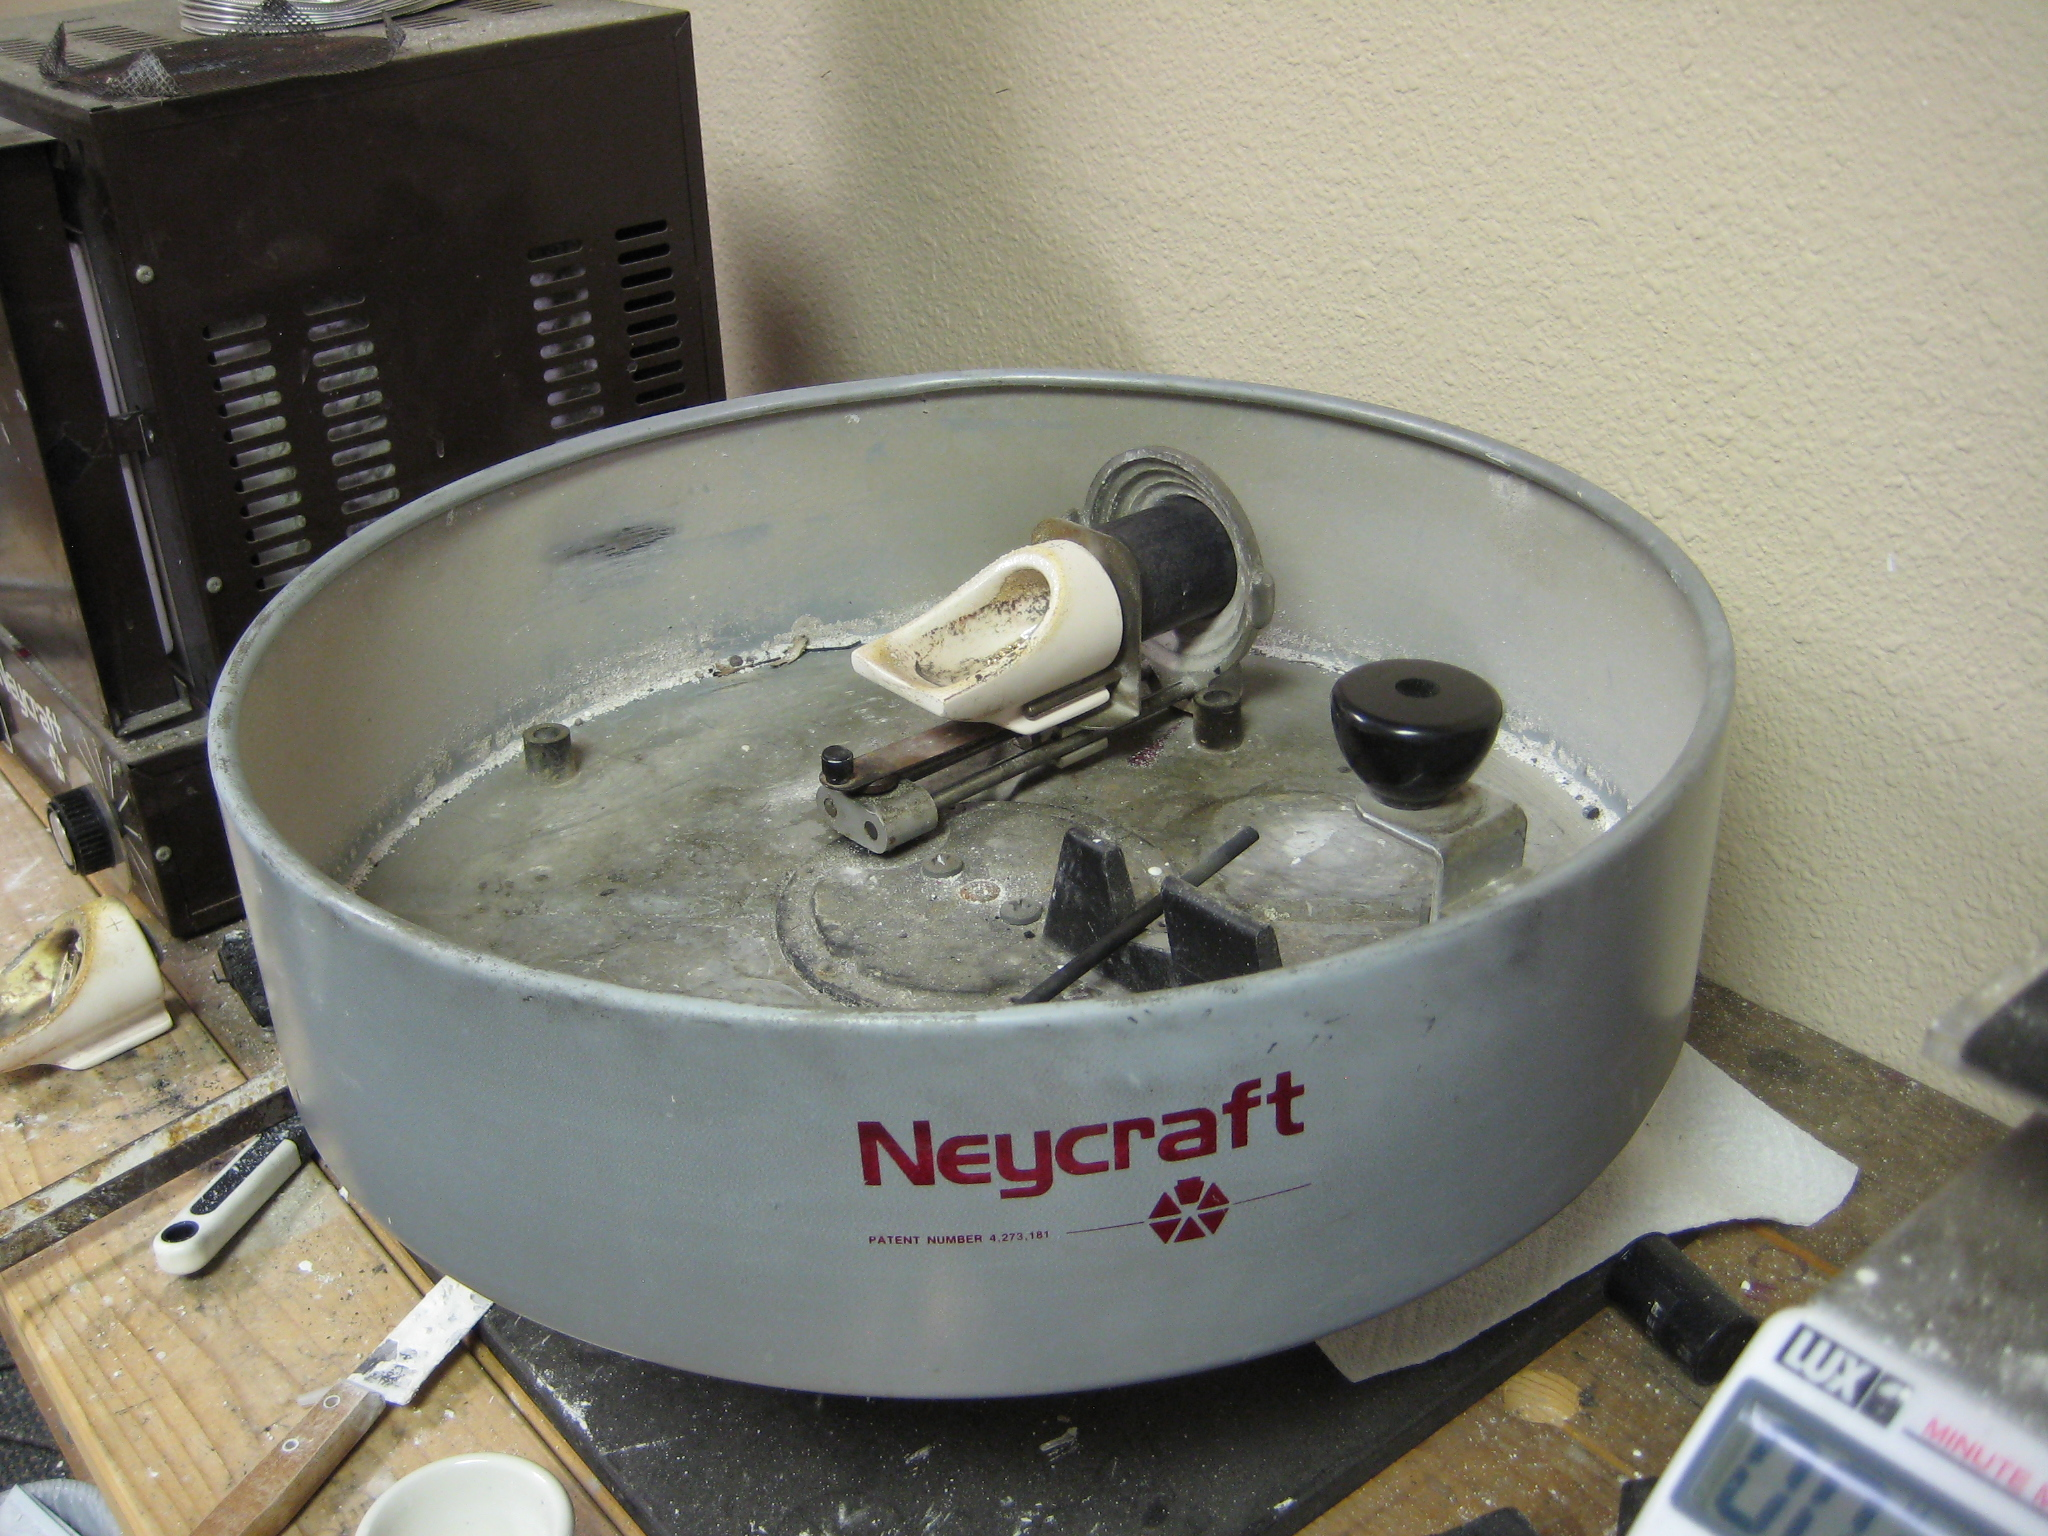 This is the centrifuge which drives the molten metal into the flask.